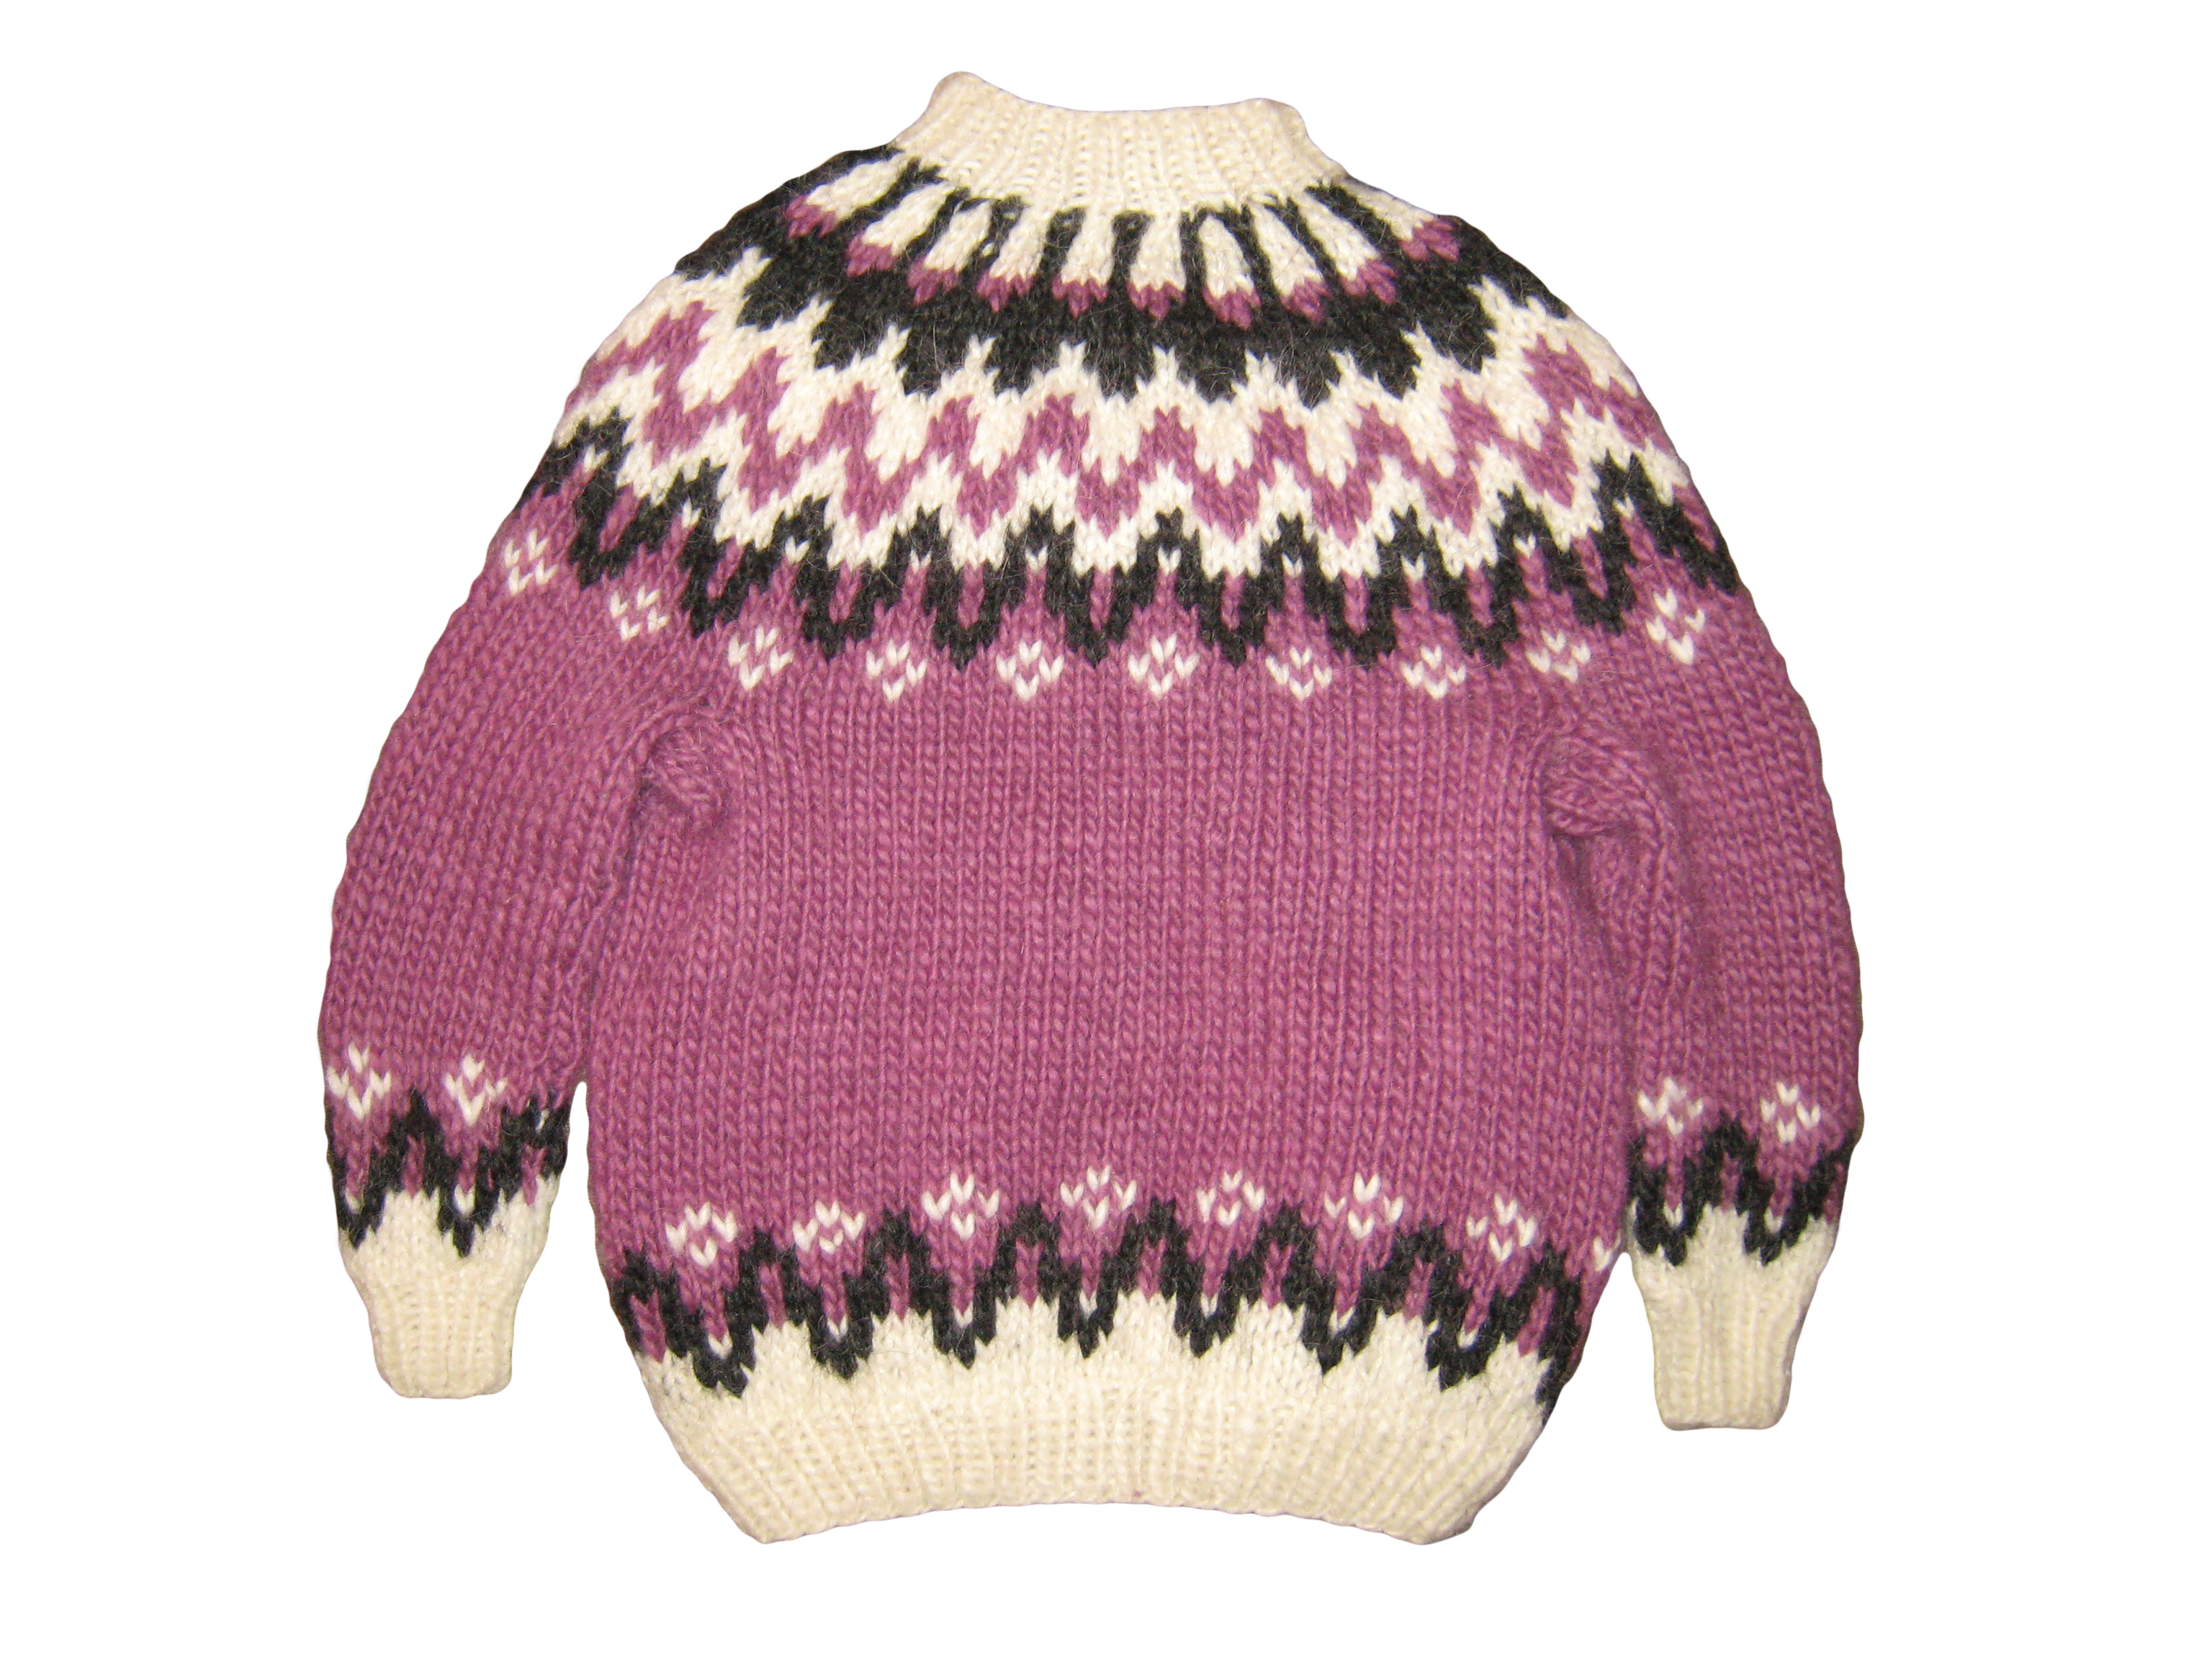 Knitting Kids Sweater : Islina garn och design yarn and pattern